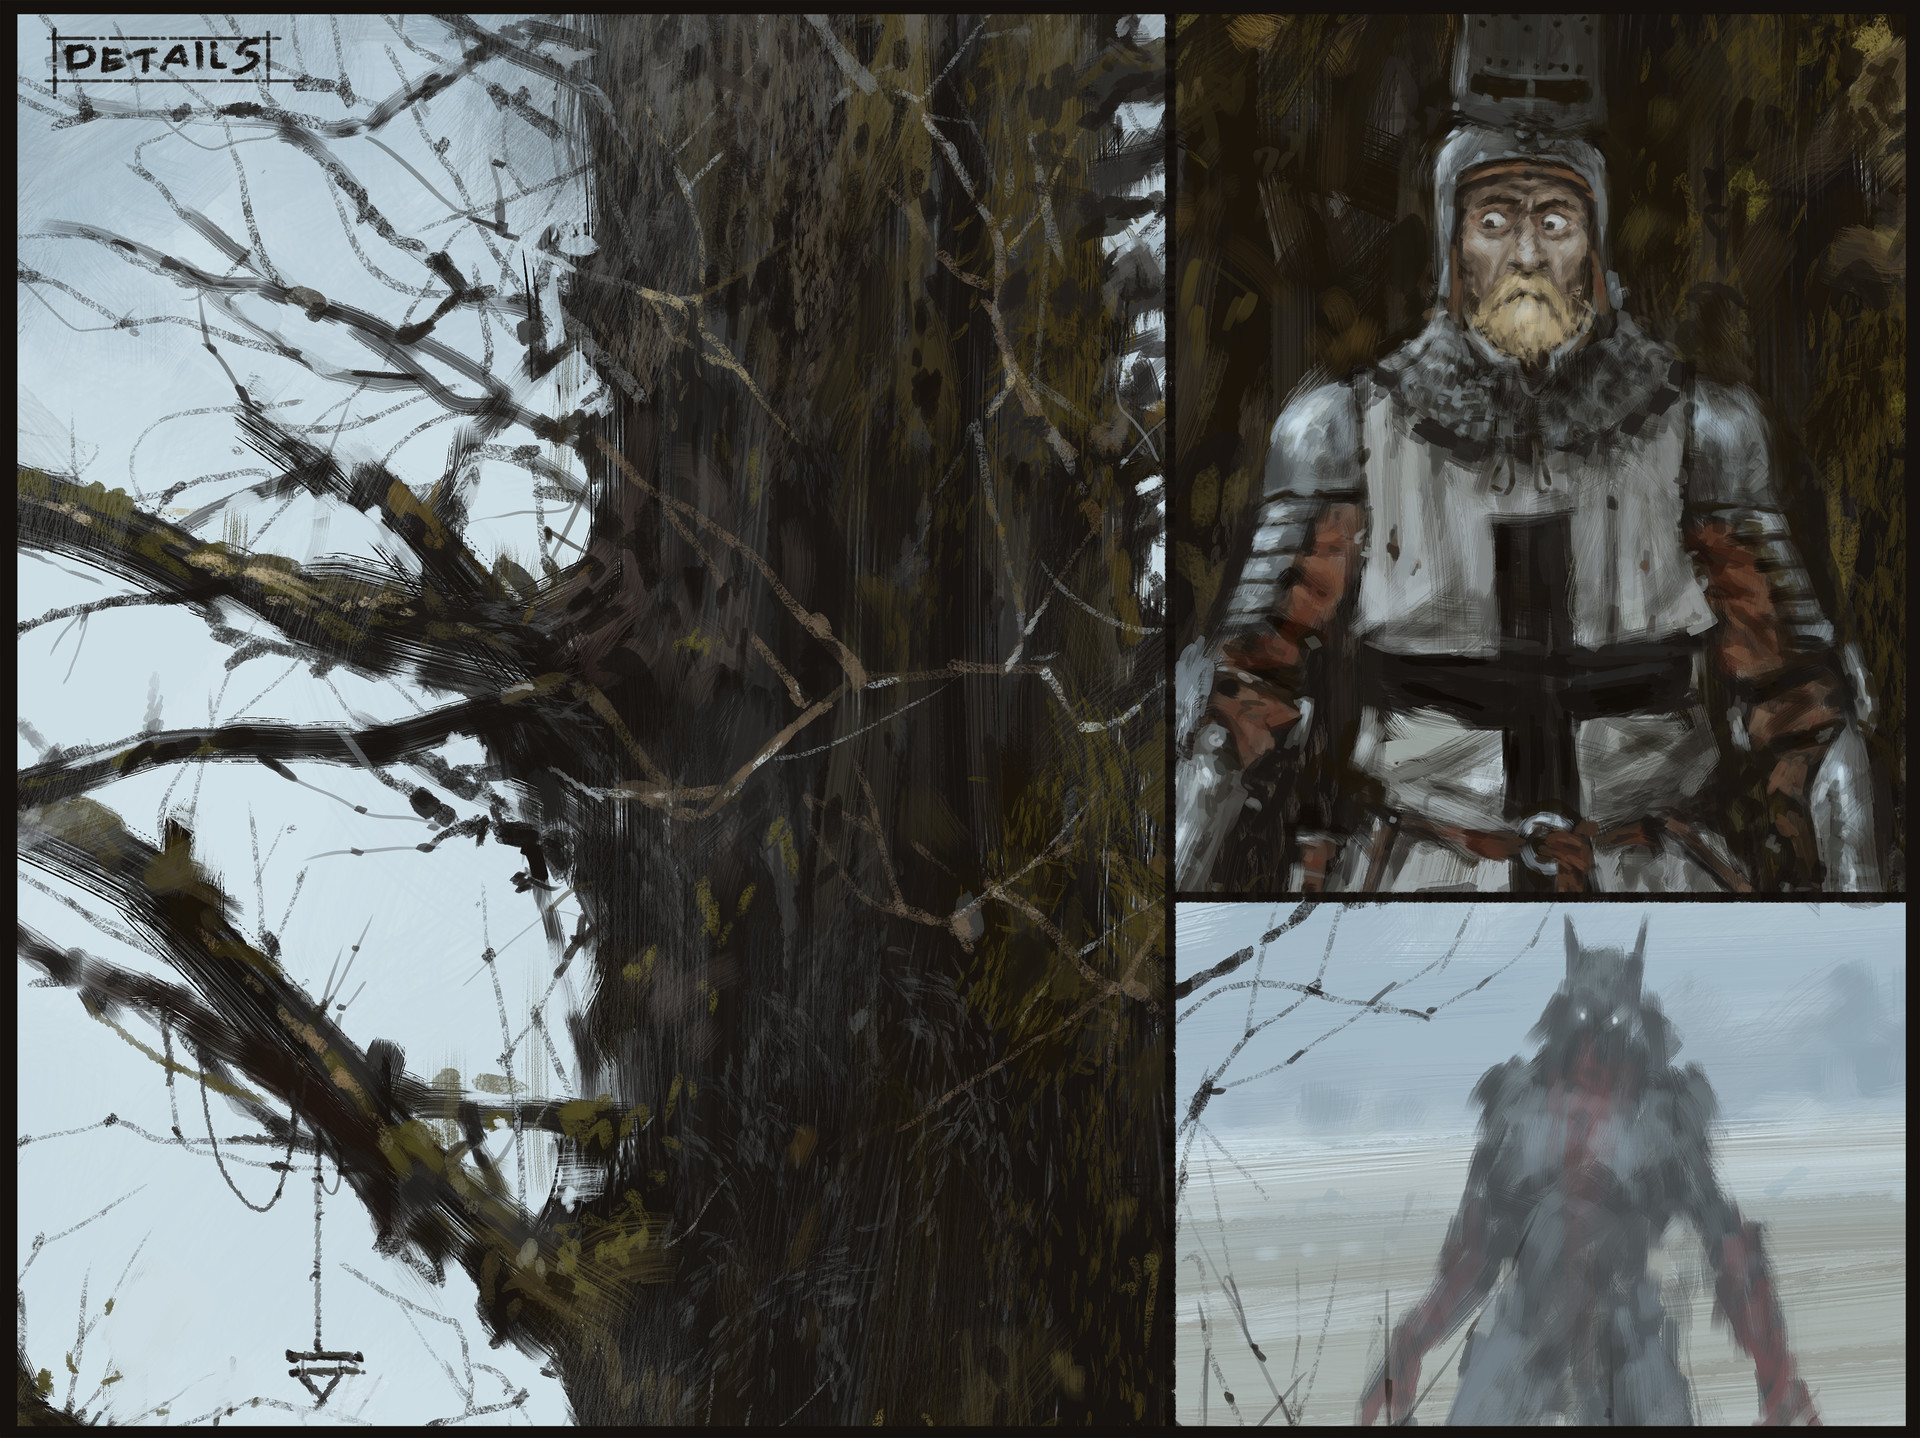 Jakub rozalski brother zygfryd process04